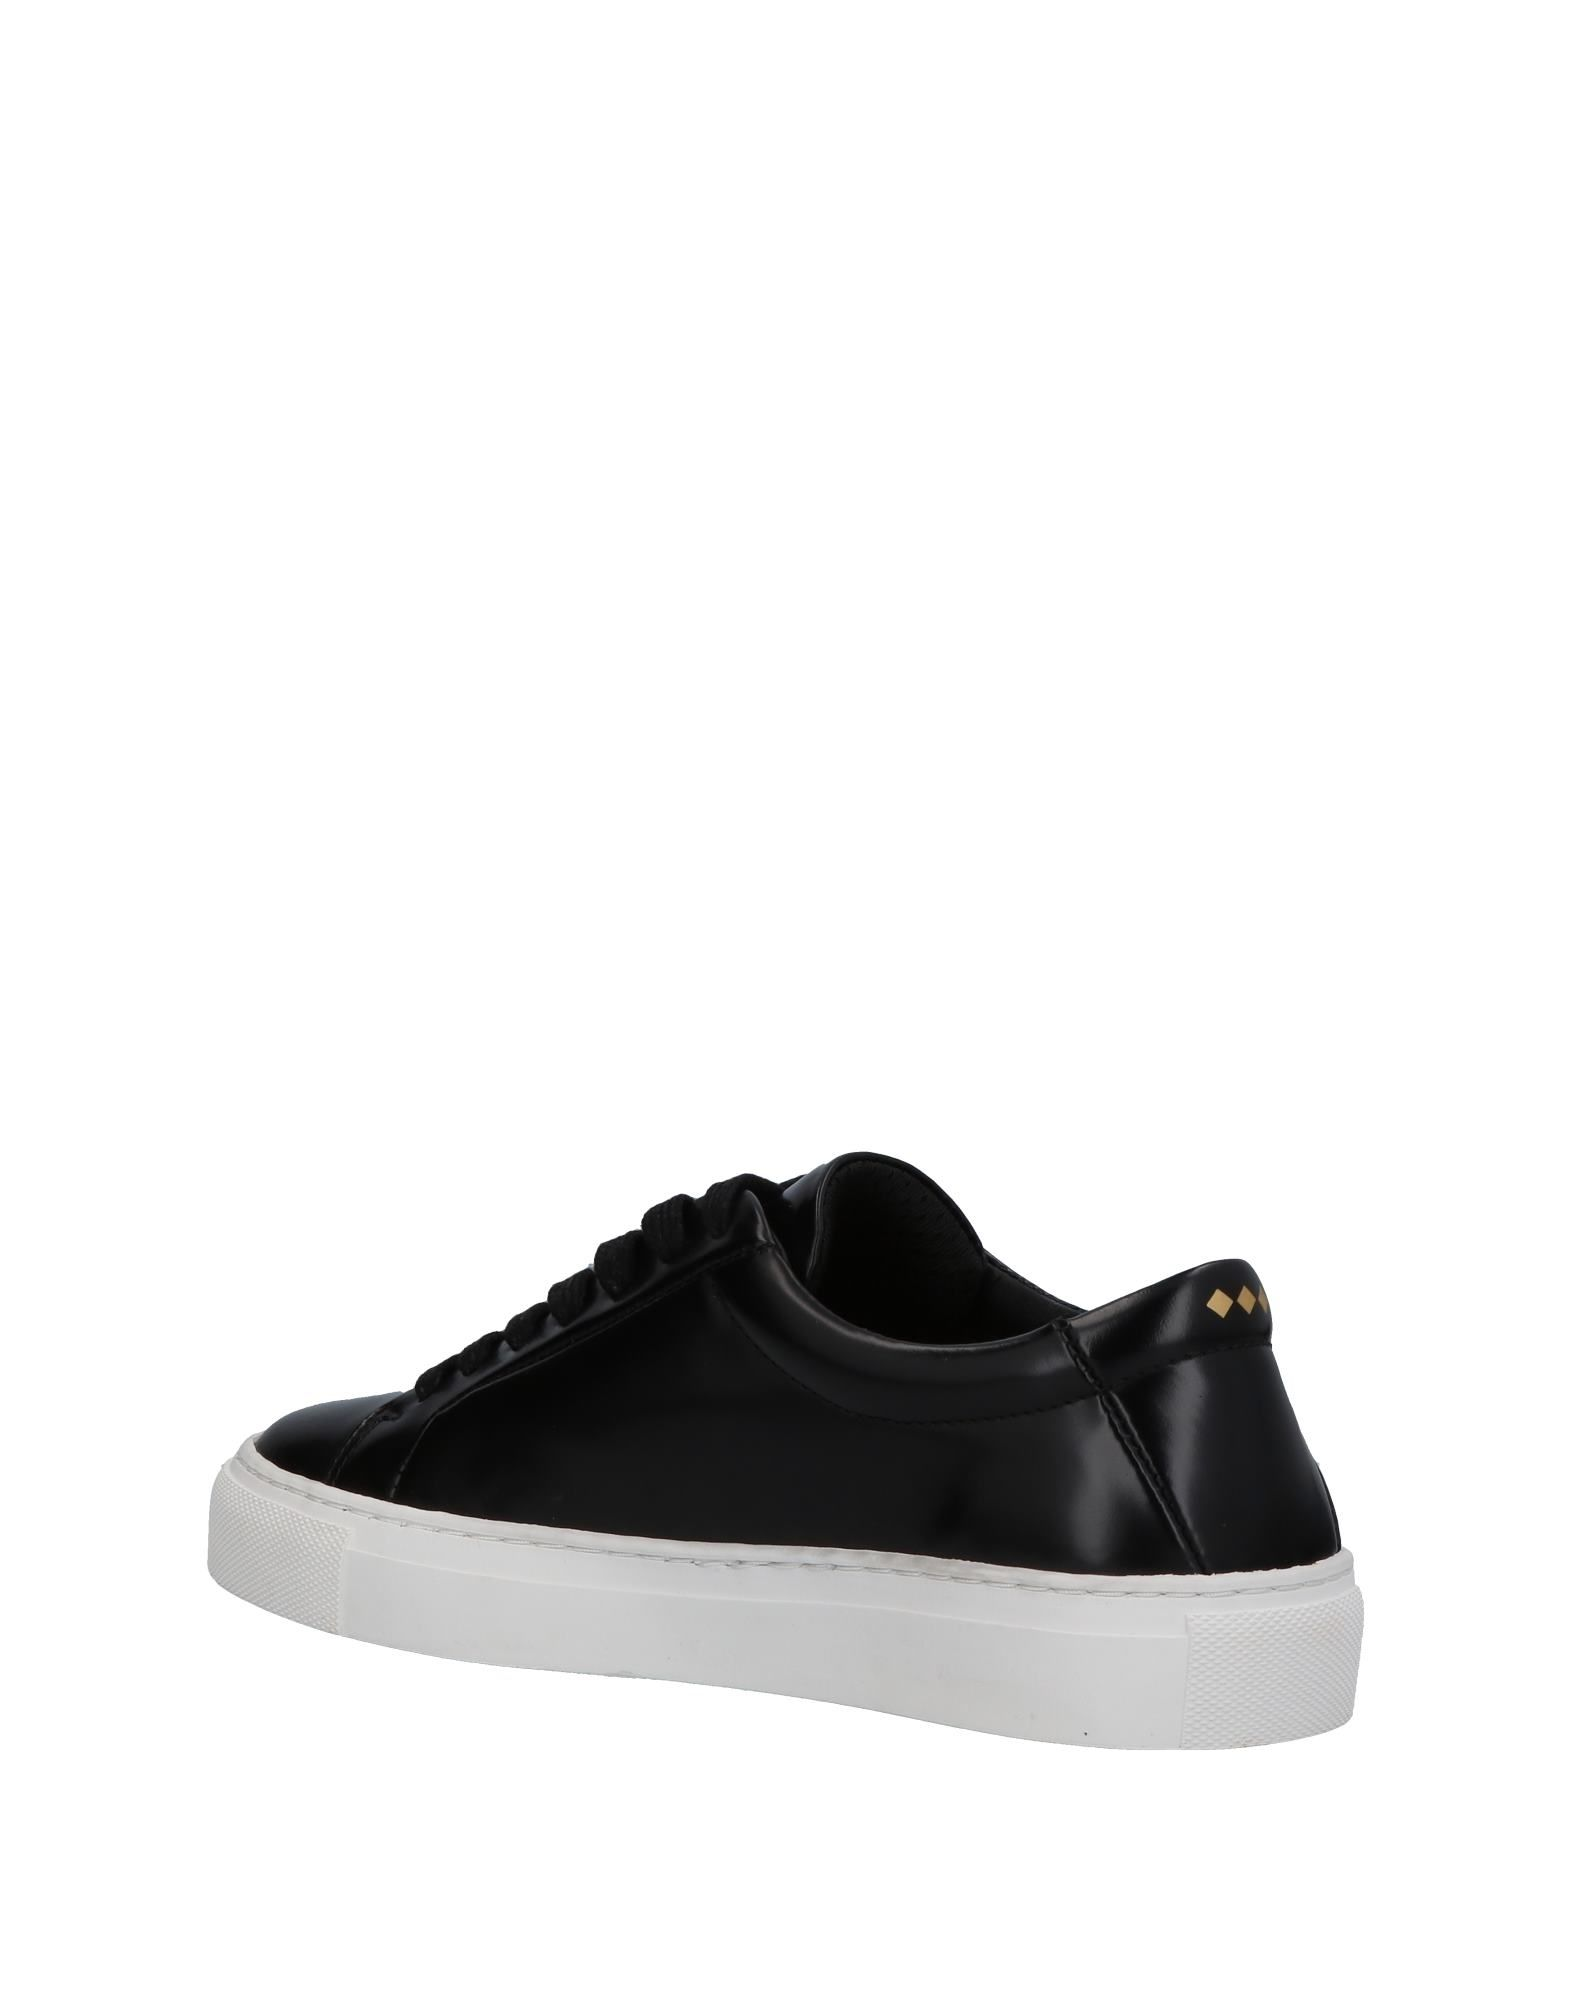 Sneakers Royal Republiq Femme - Sneakers Royal Republiq sur